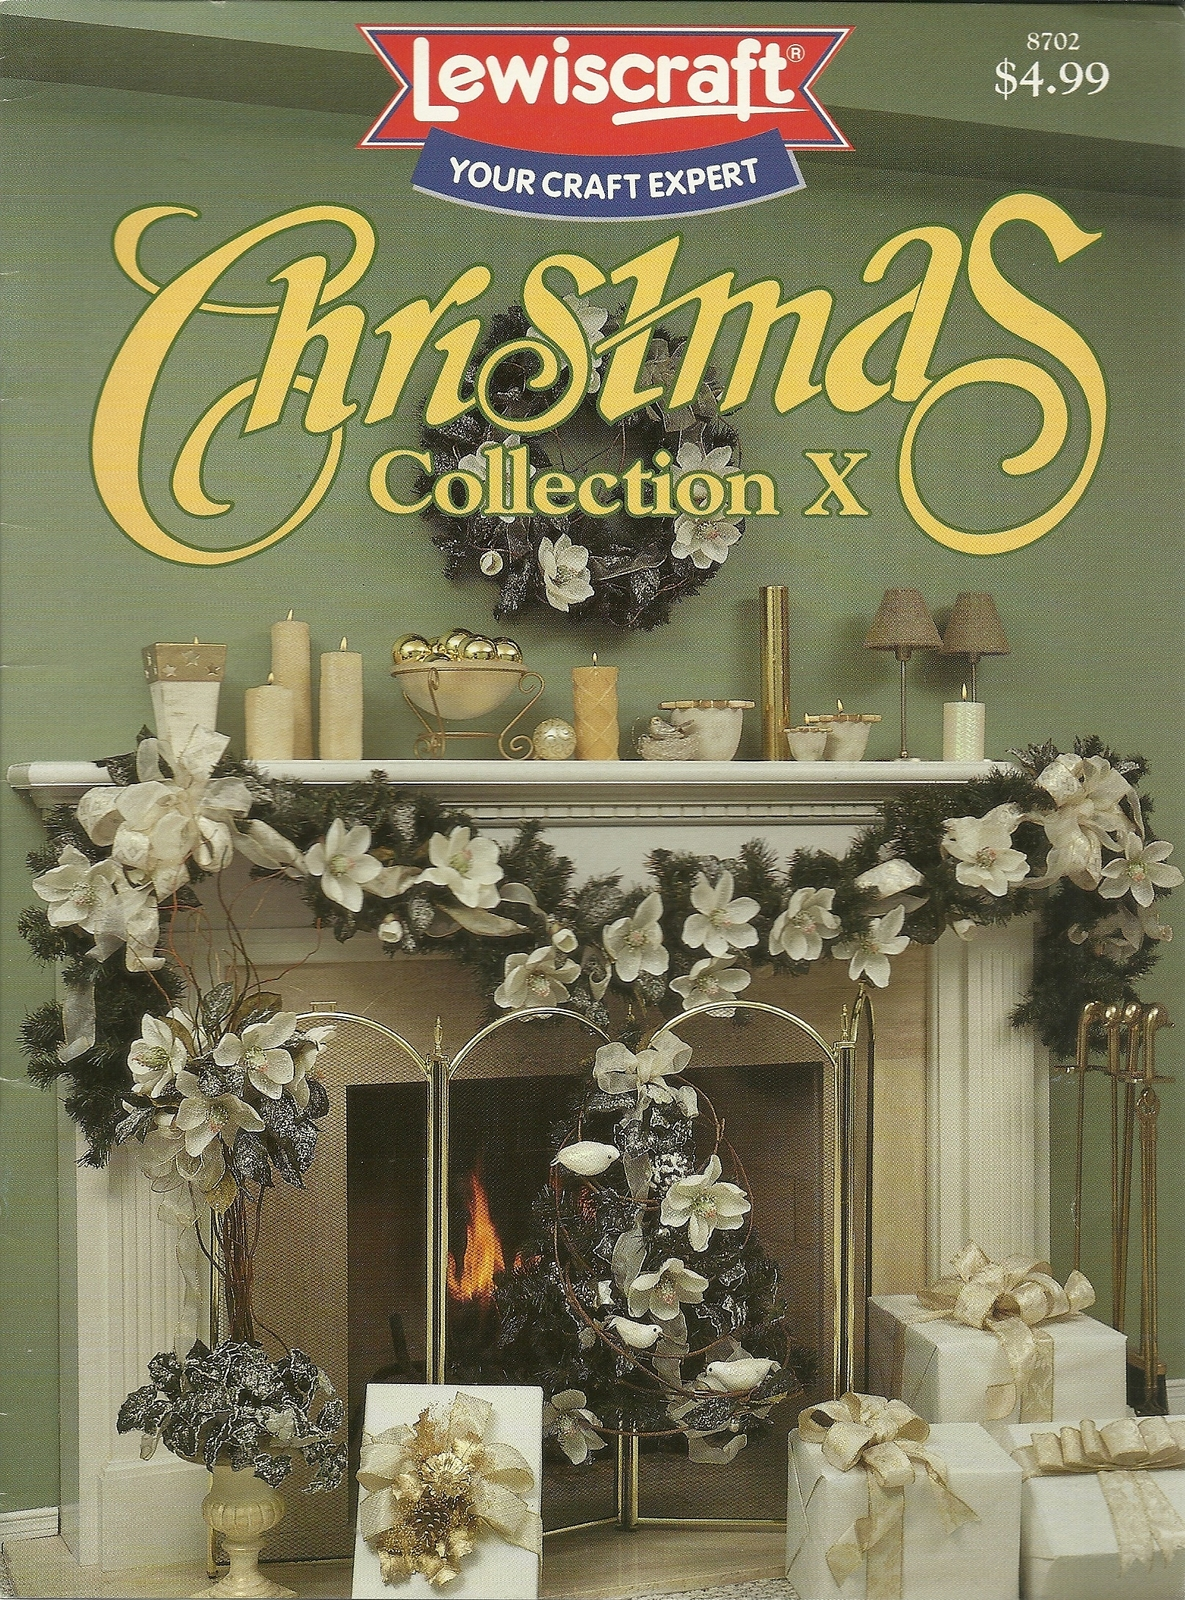 Christmas collection x craft leaflet no. 8702 lewiscraft  1